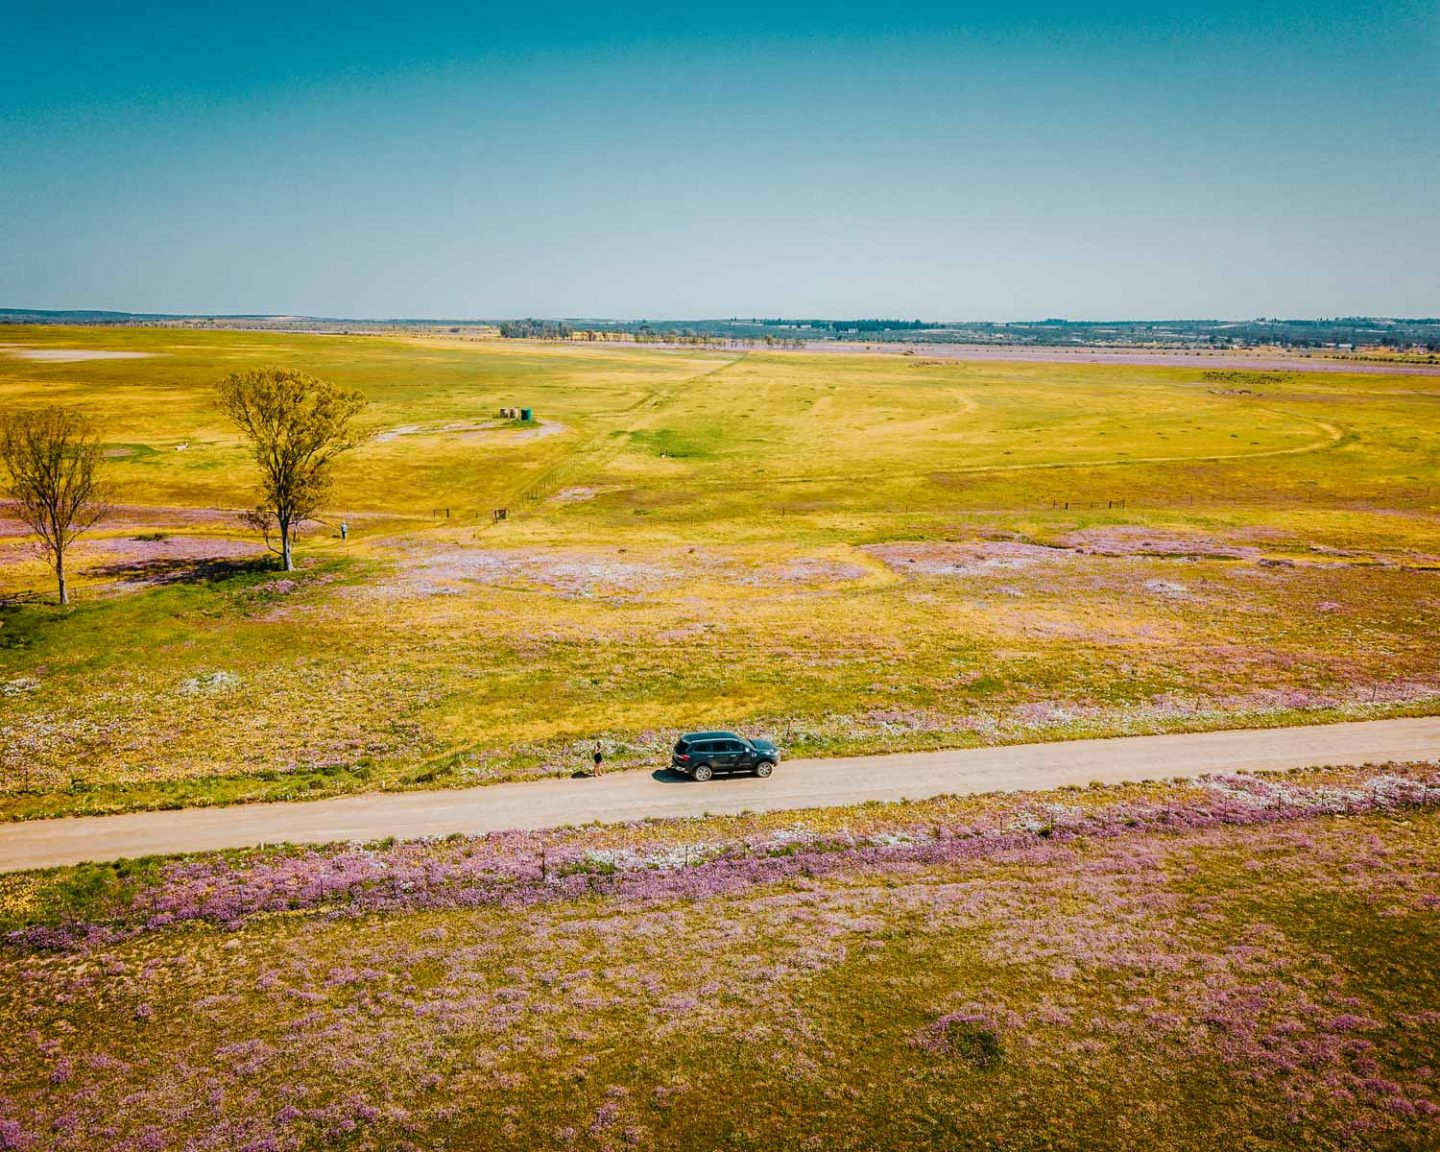 wildflowers drone shot